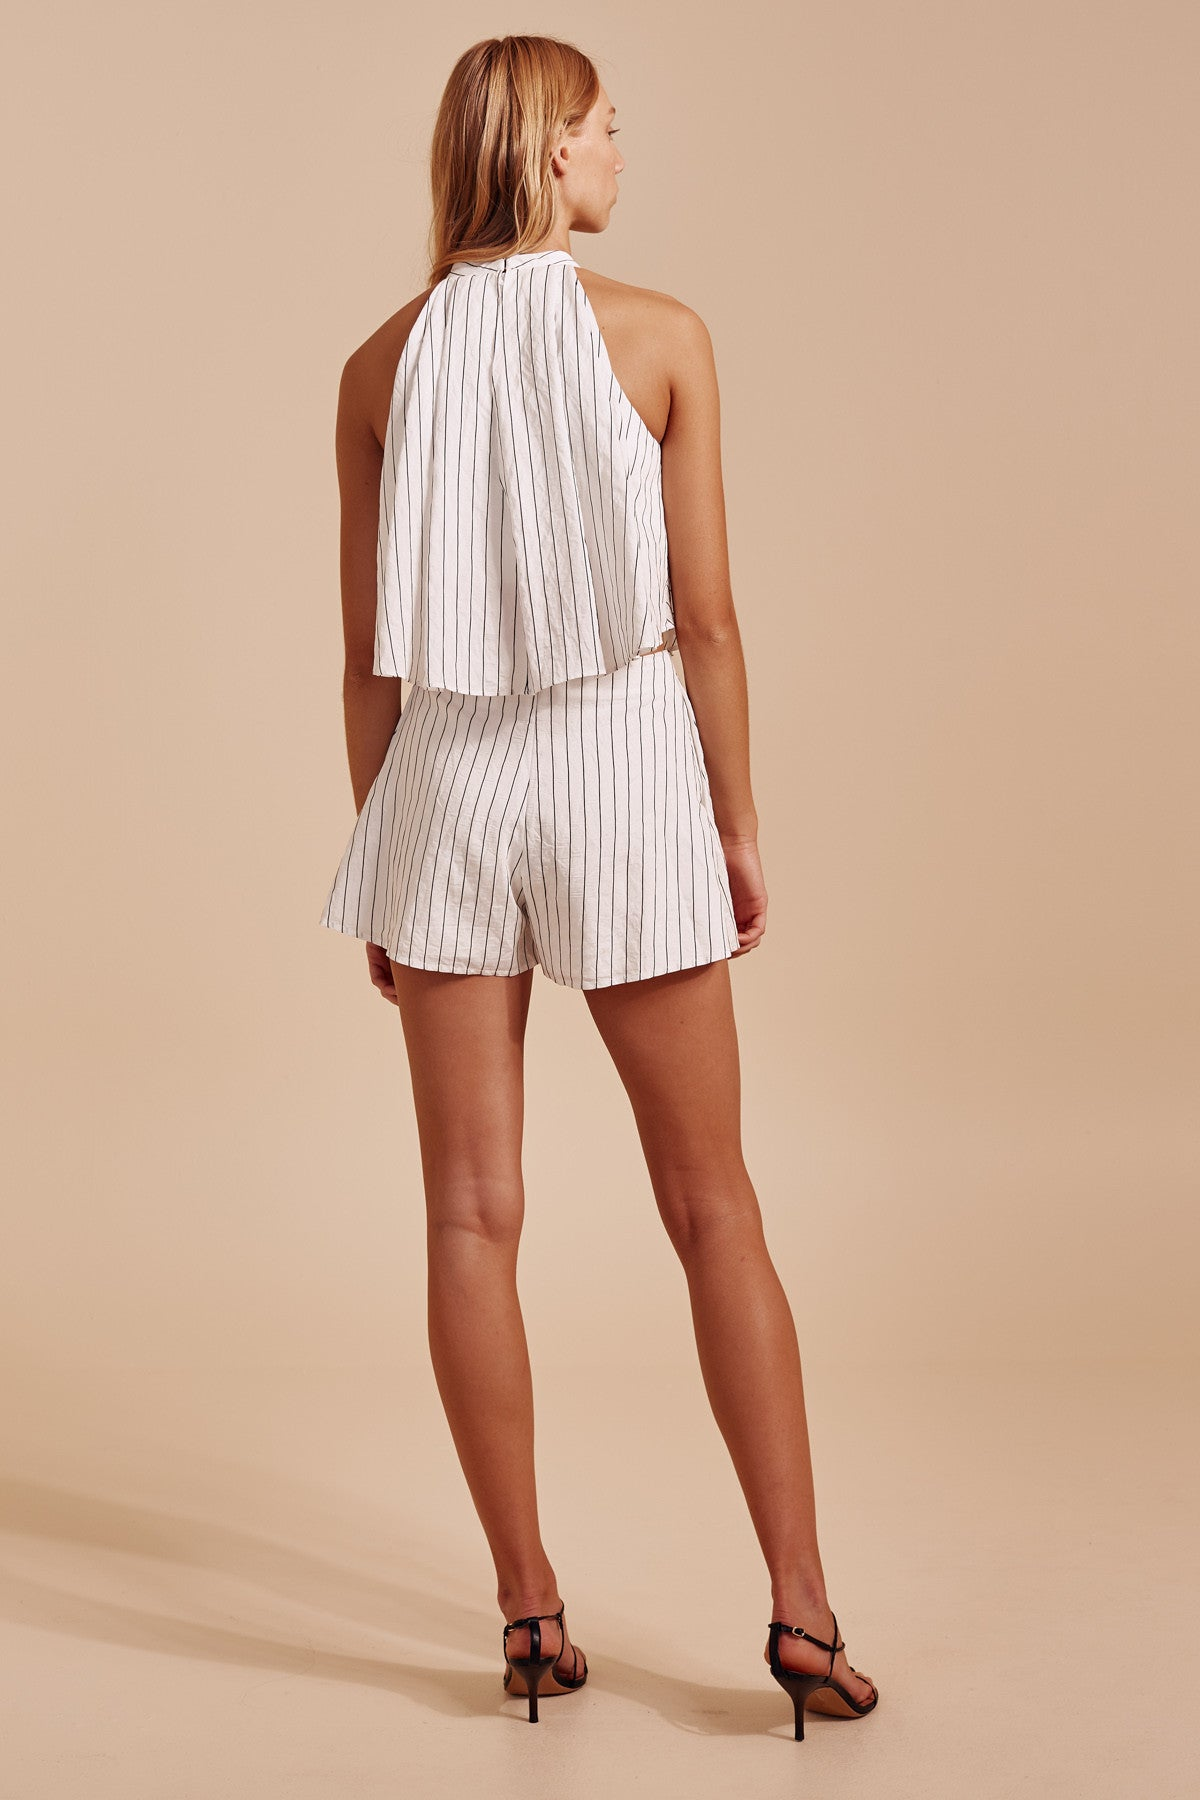 SUFFUSE SHORT ivory stripe